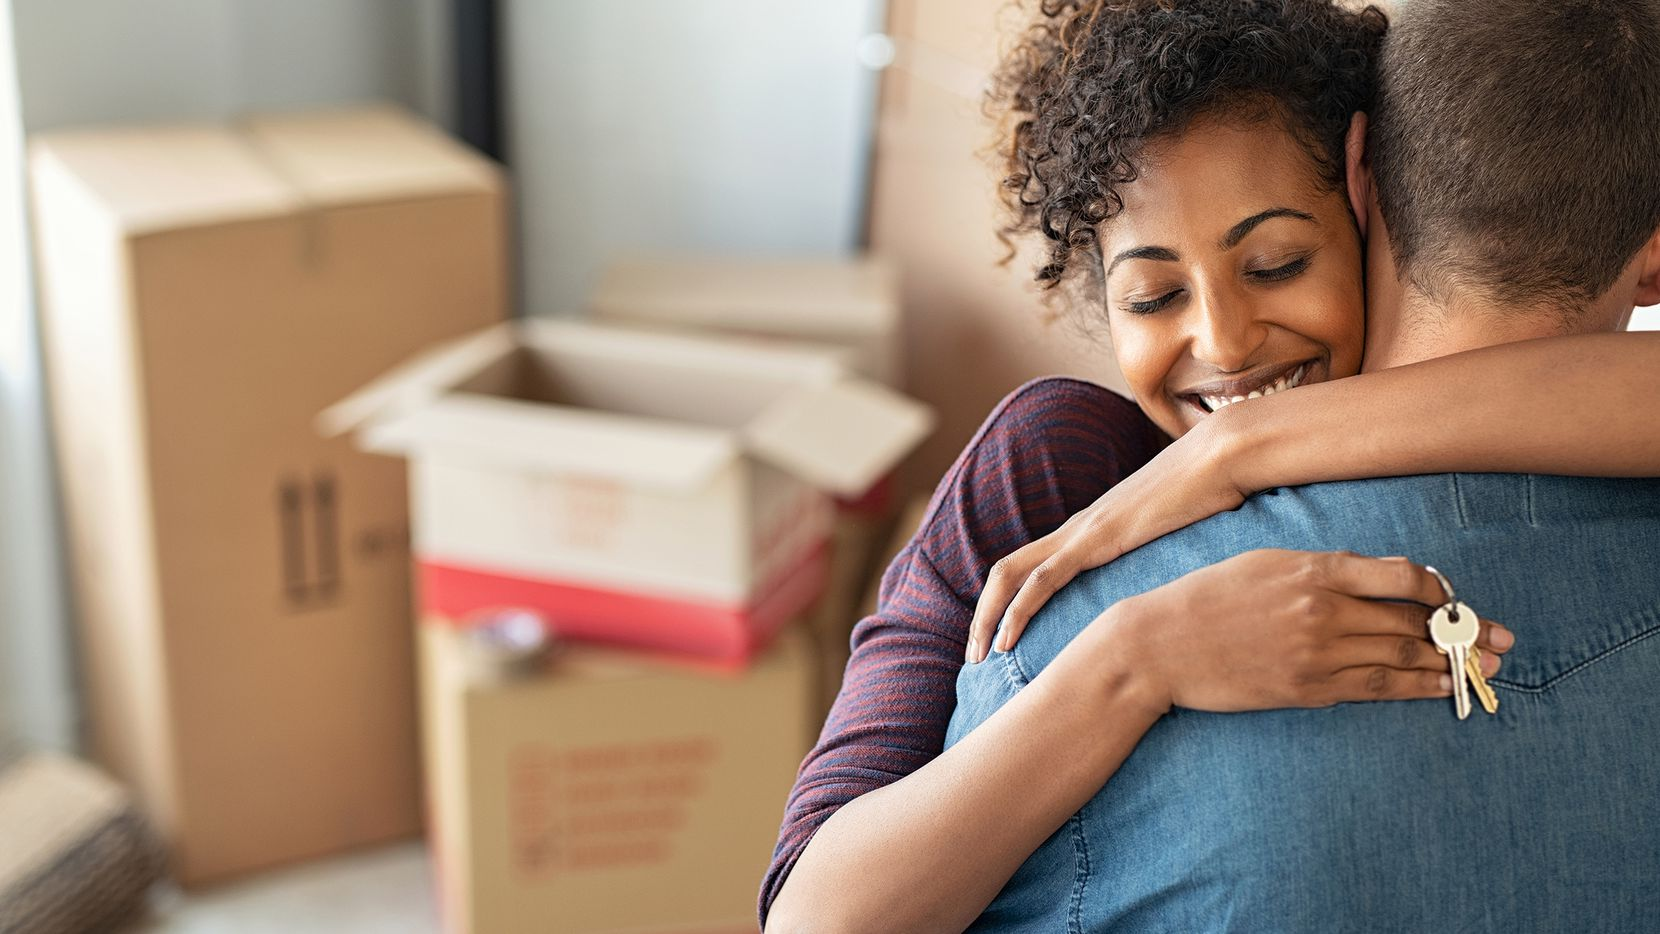 Ninety-three percent of Americans are happier after purchasing a home, and 83% would not want to return to renting.